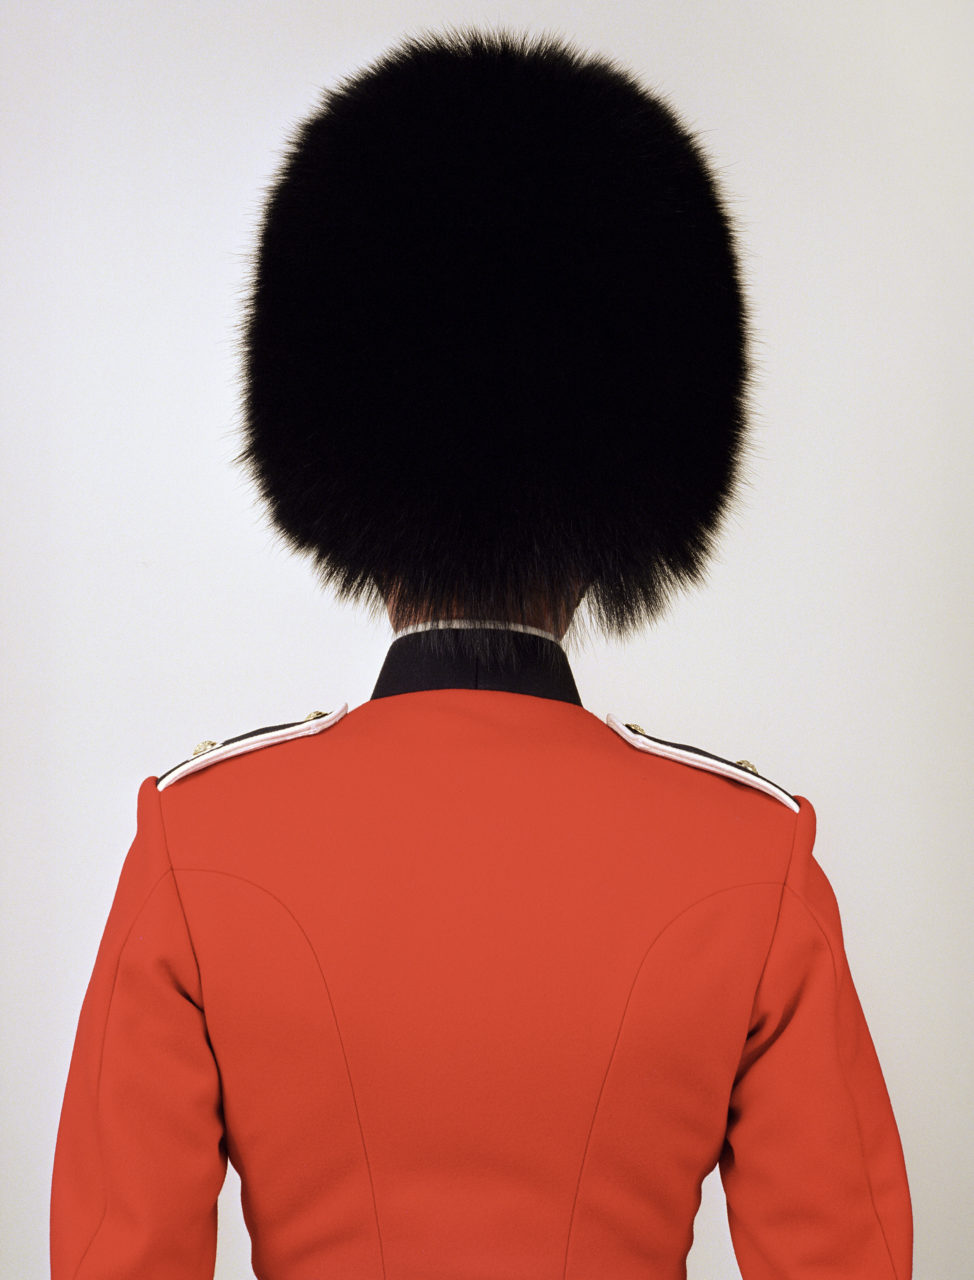 Scot guard, UK, from the EMPIRE series, 2004-2007 – Photo by Charles Fréger